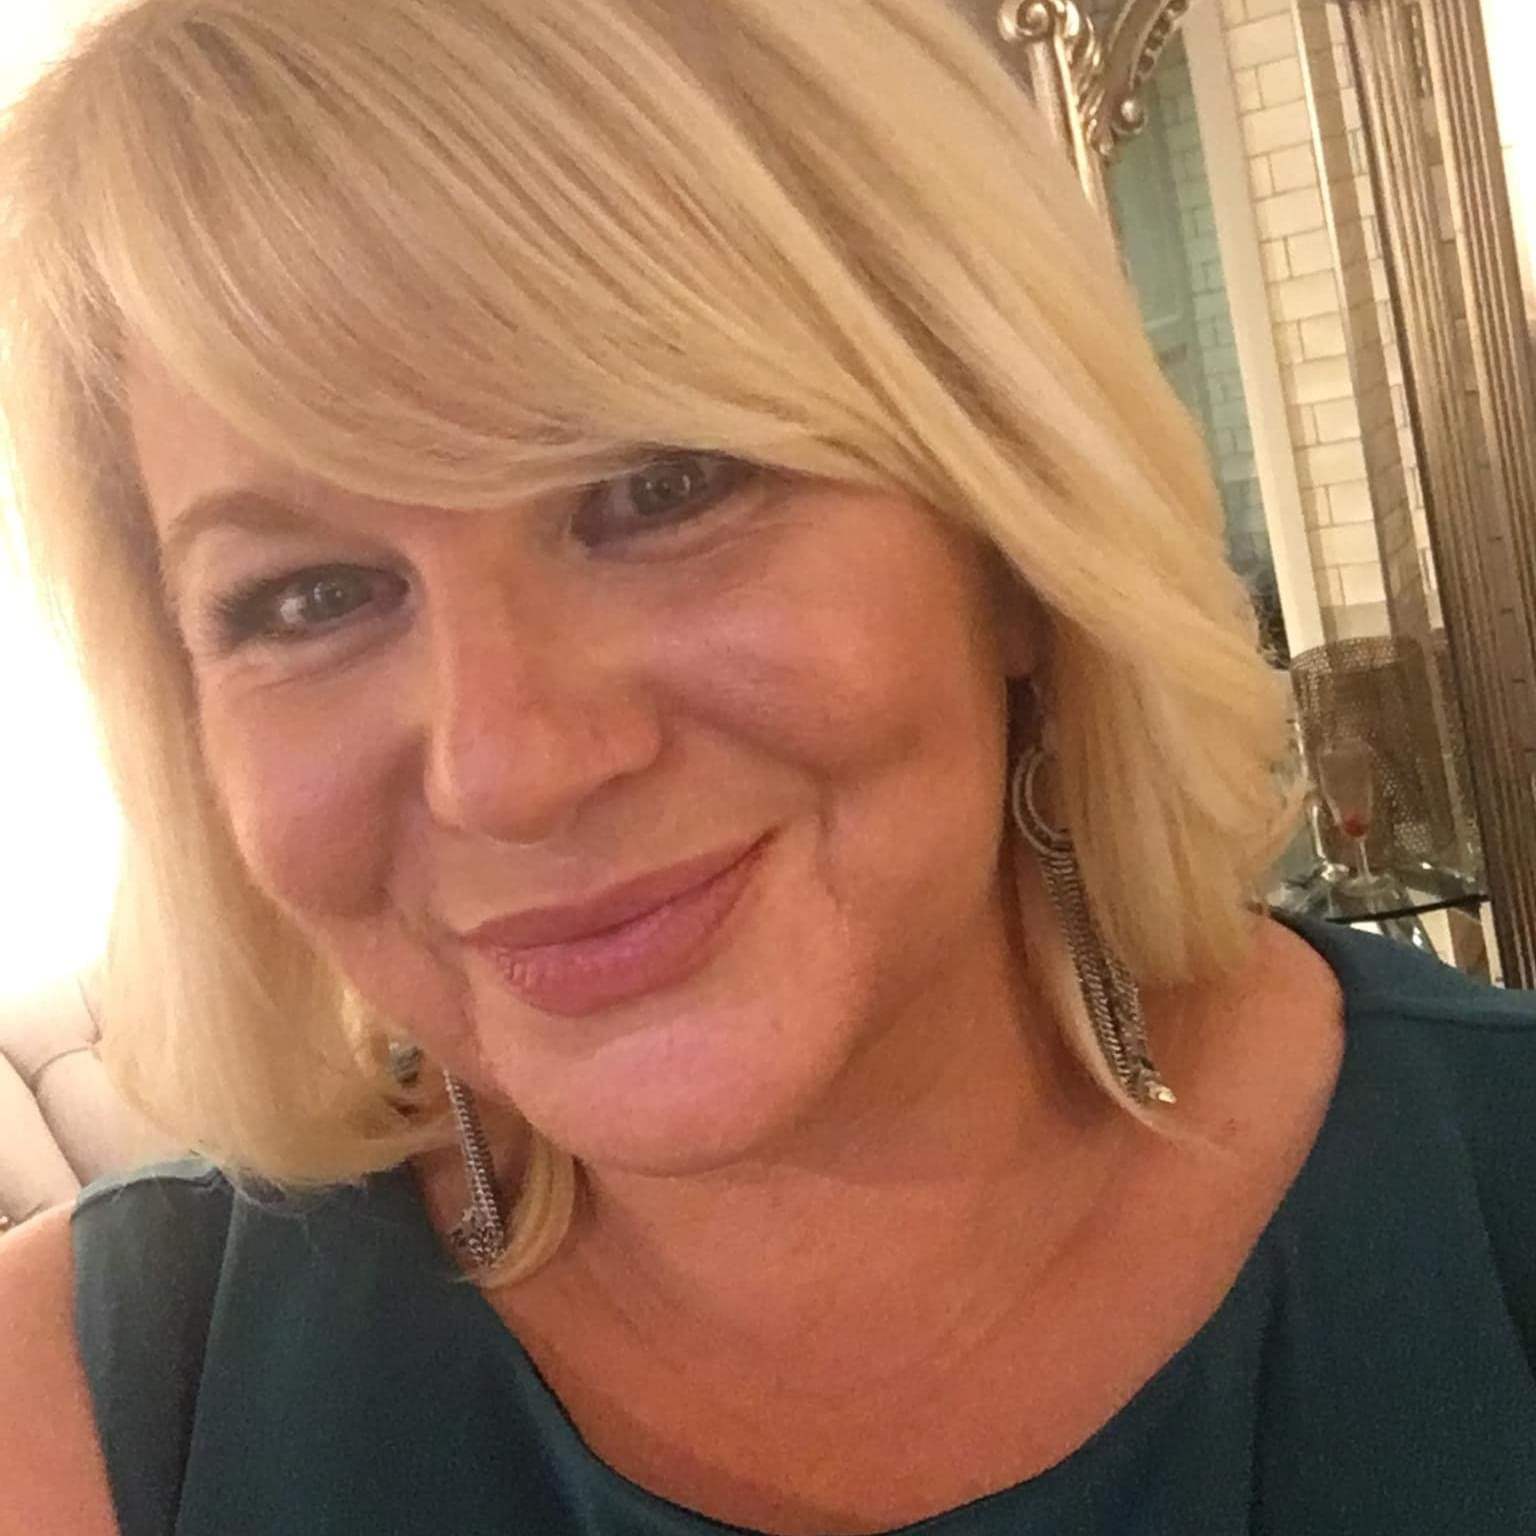 Keeley Goodwin joins French Beauty Expert Distribution as a Regional Business Manager